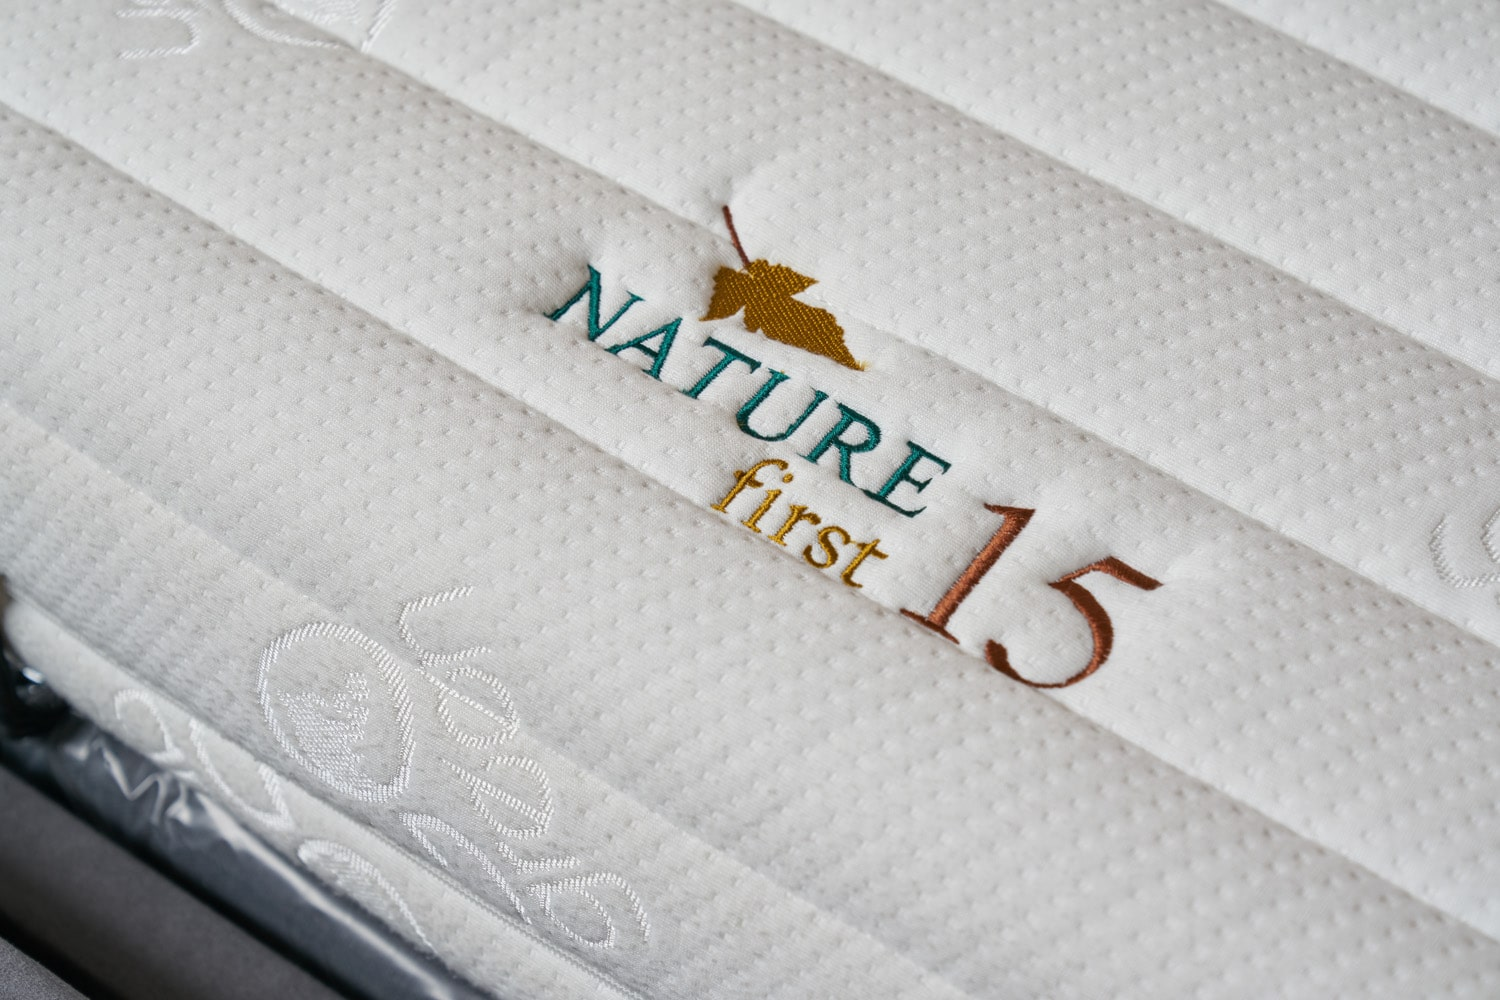 getha mattress natures first comfort2 Home Minimalism